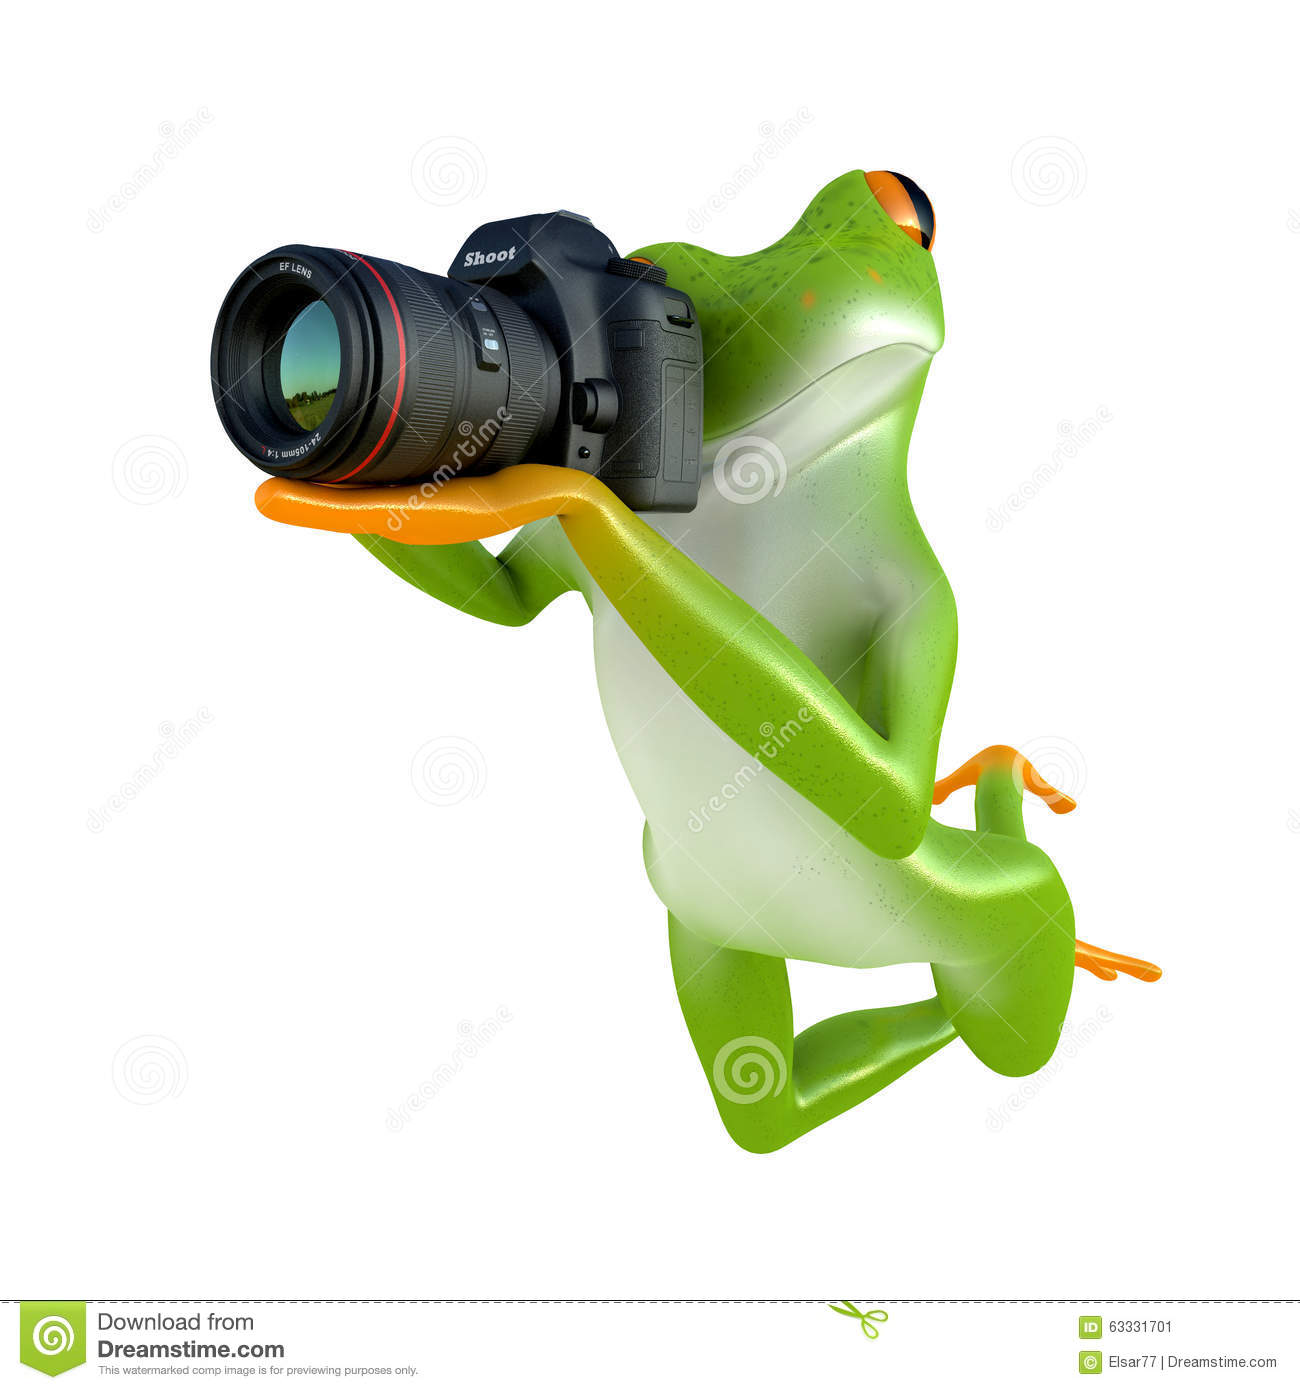 Tropical frog posing with a camera isolated on white background